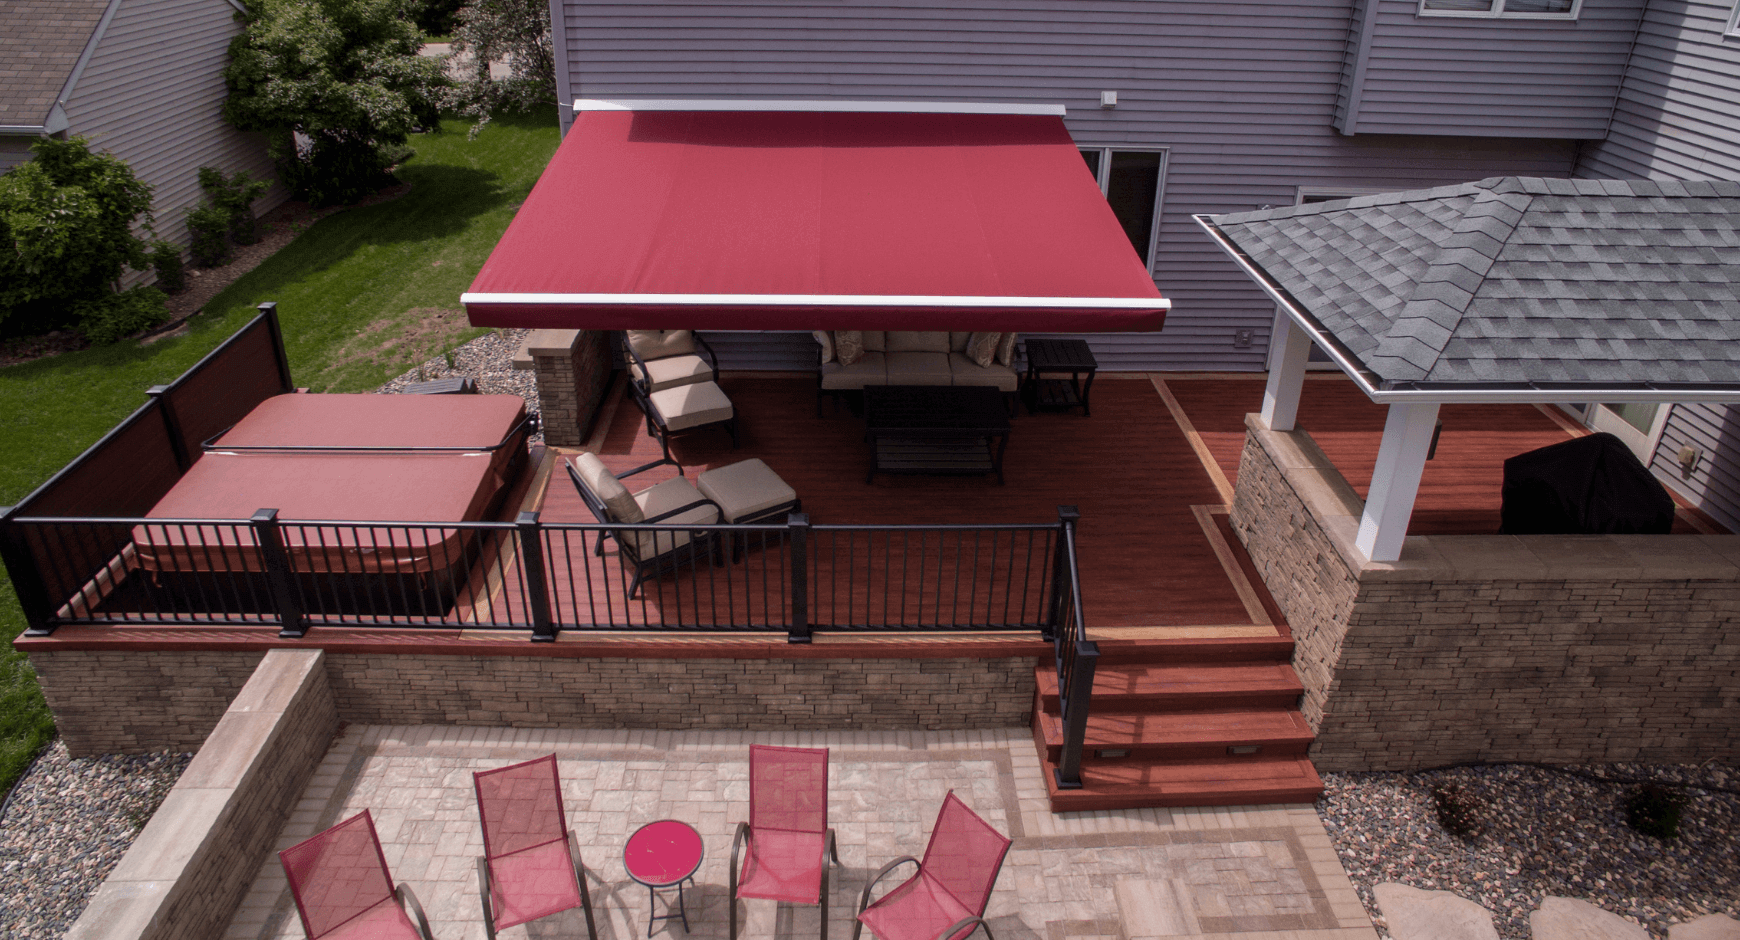 Beautiful red retractable awning seen from above